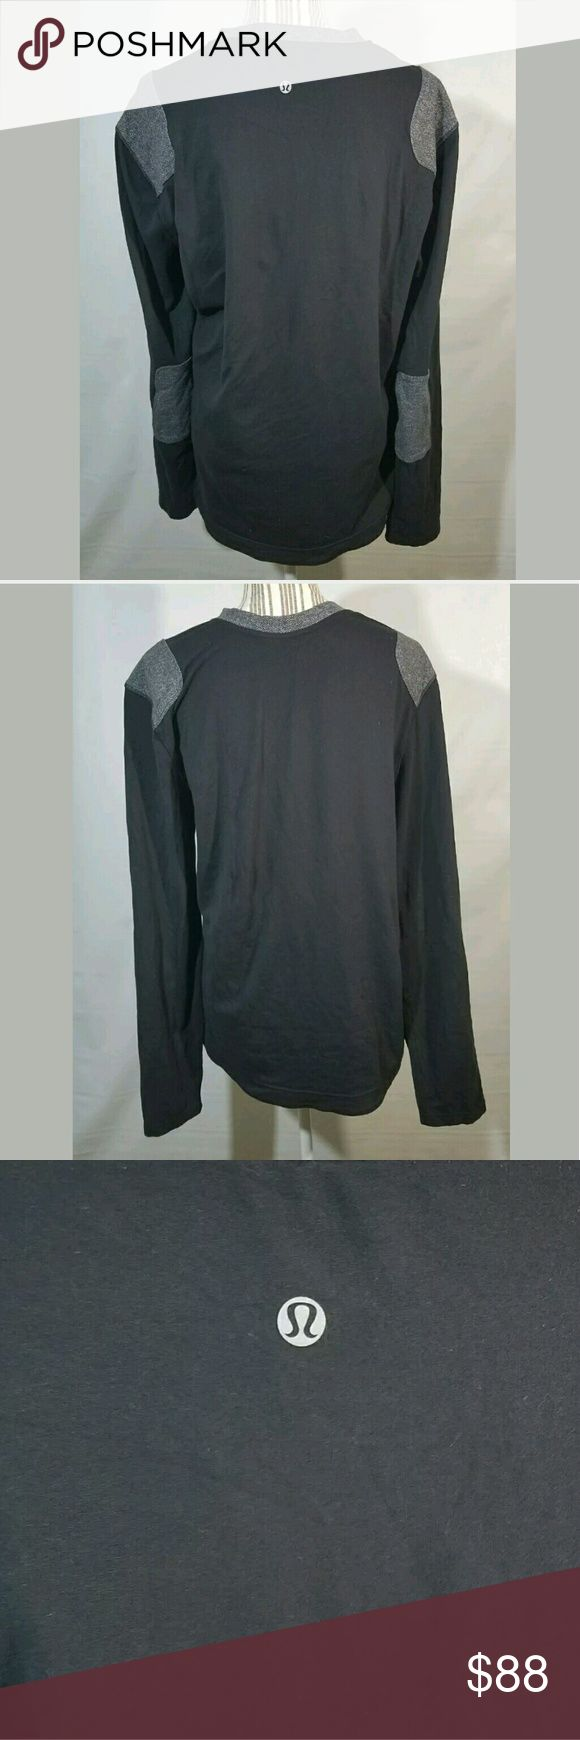 Lululemon Shirt Men's XL Long Sleeve Elbow Patches Lululemon Shirt Men's XL Long Sleeve Elbow Patches Black Gray--- Excellent used condition.   23.5 inches pit to pit.  30 inches long.   AB lululemon athletica Shirts Tees - Long Sleeve